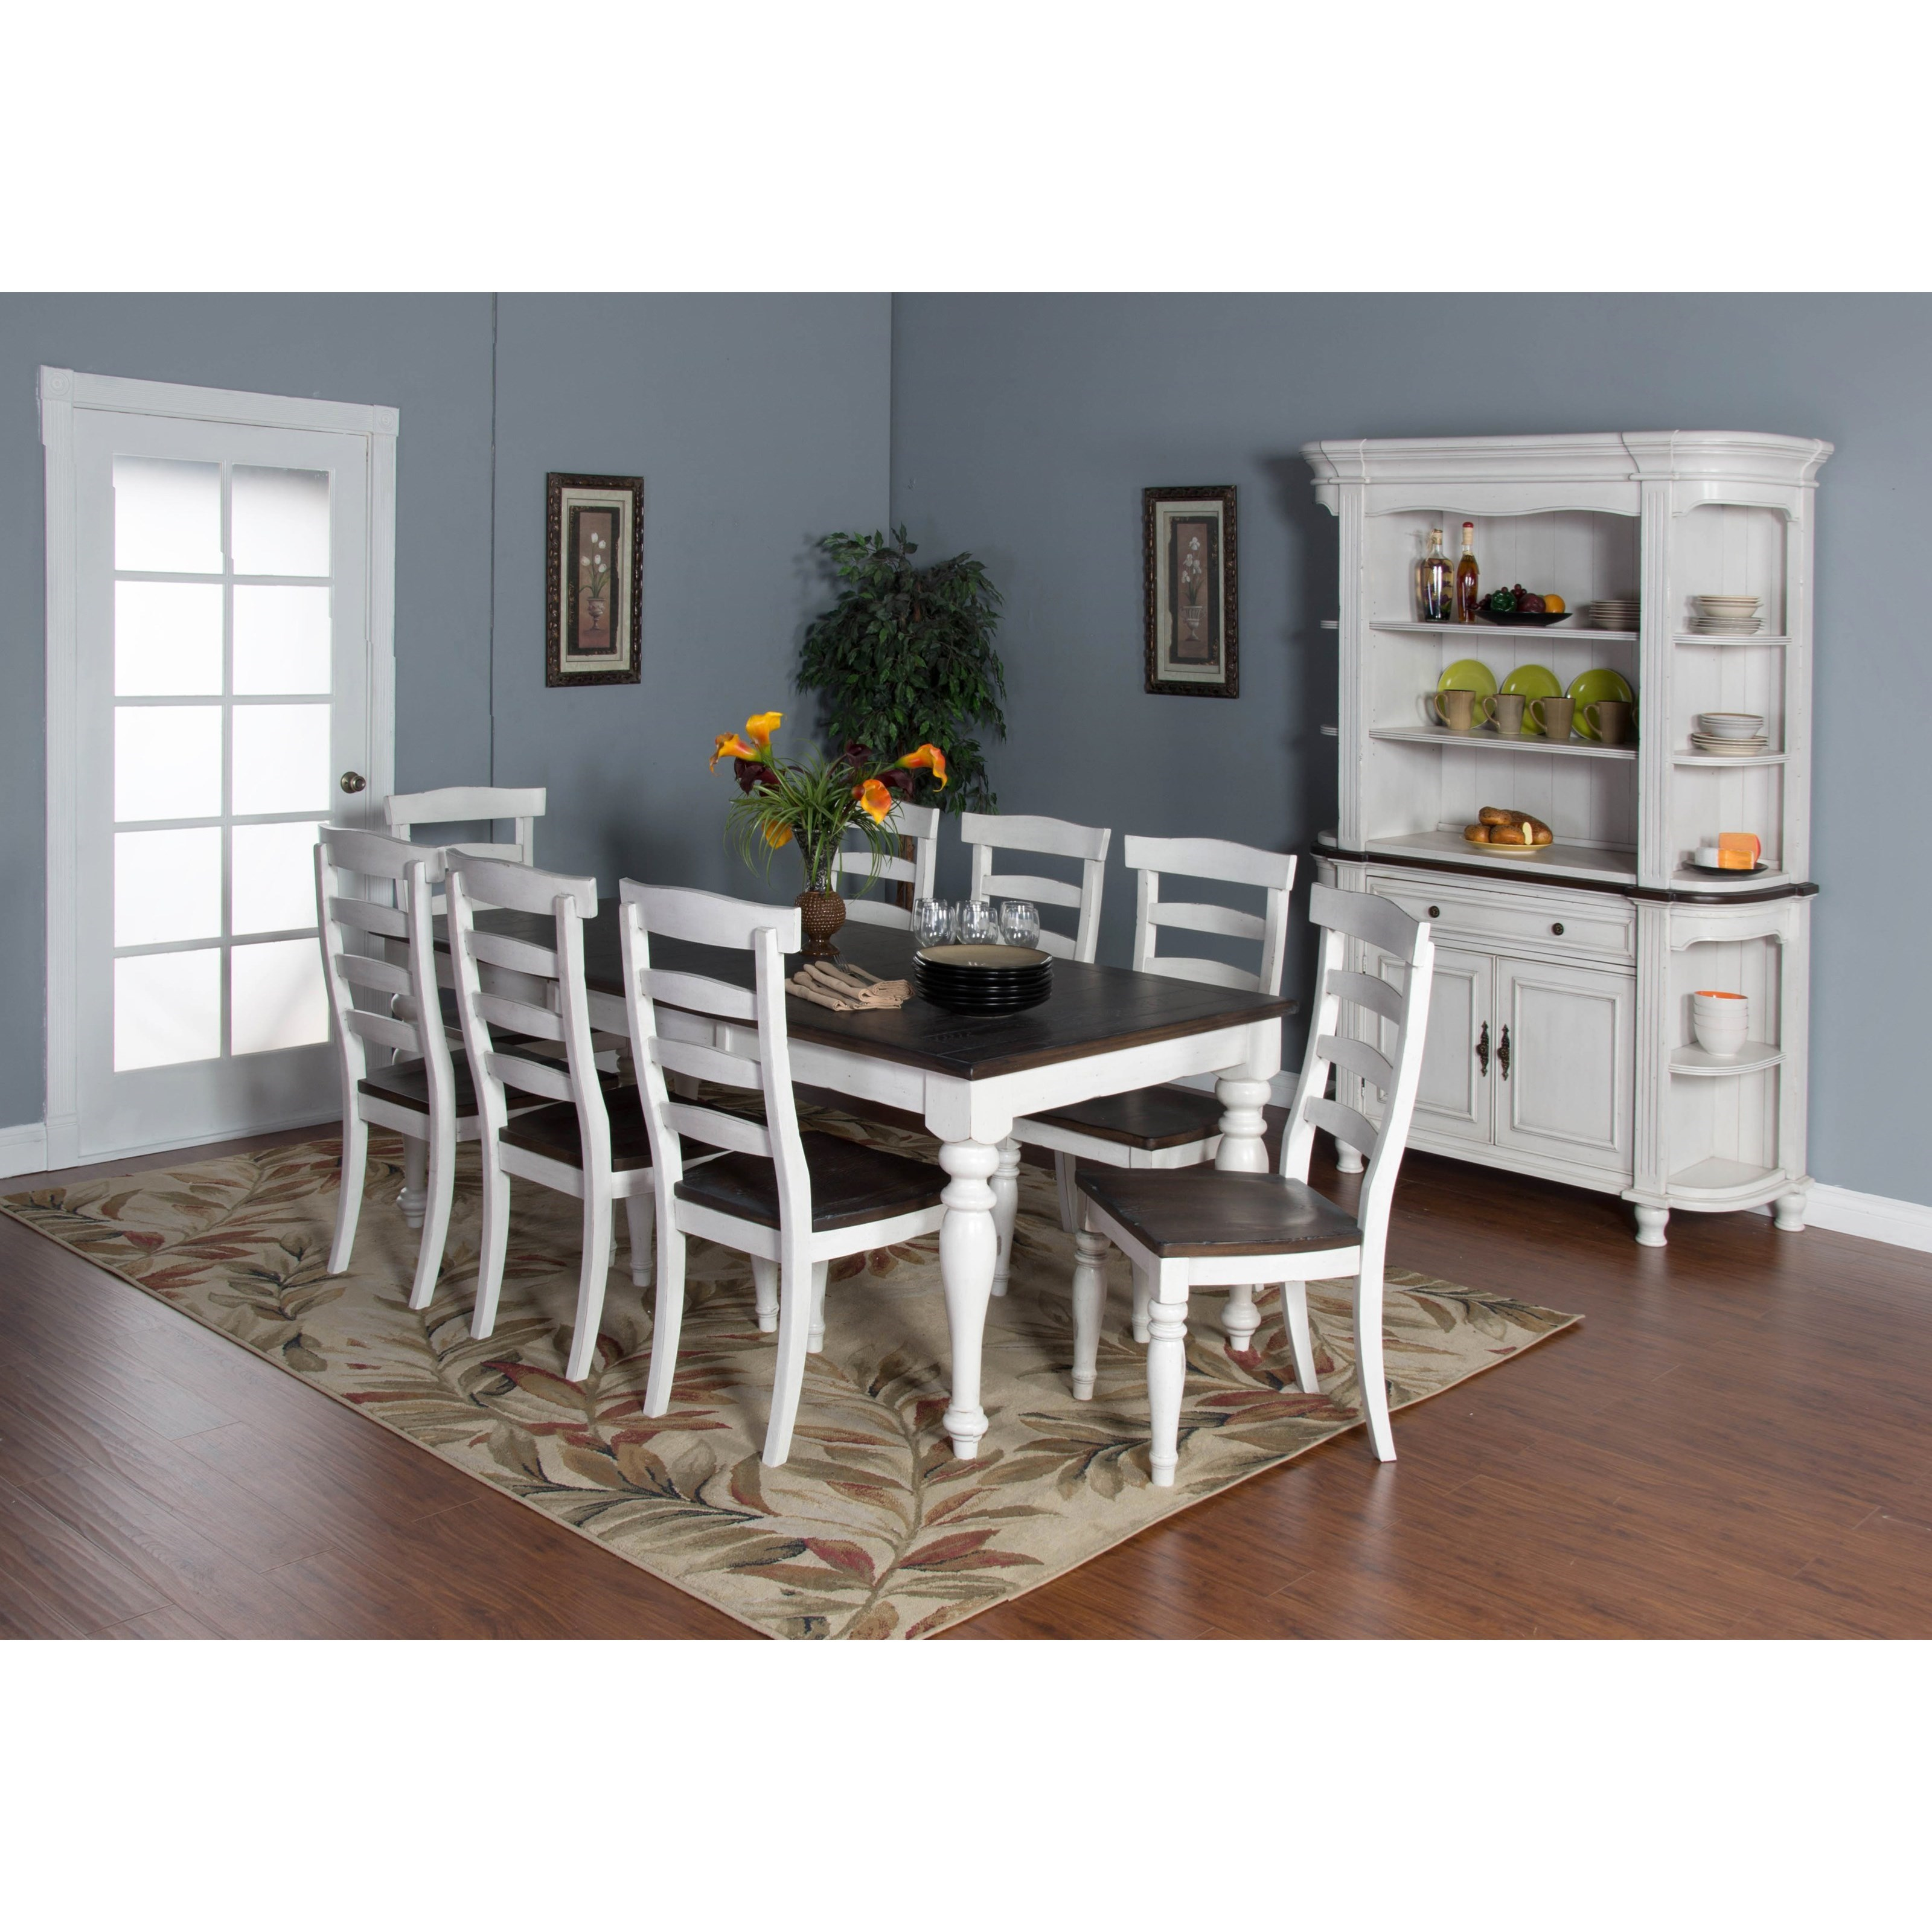 Sunny Designs Bourbon County Casual Dining Room Group - Item Number: FC Dining Room Group 2